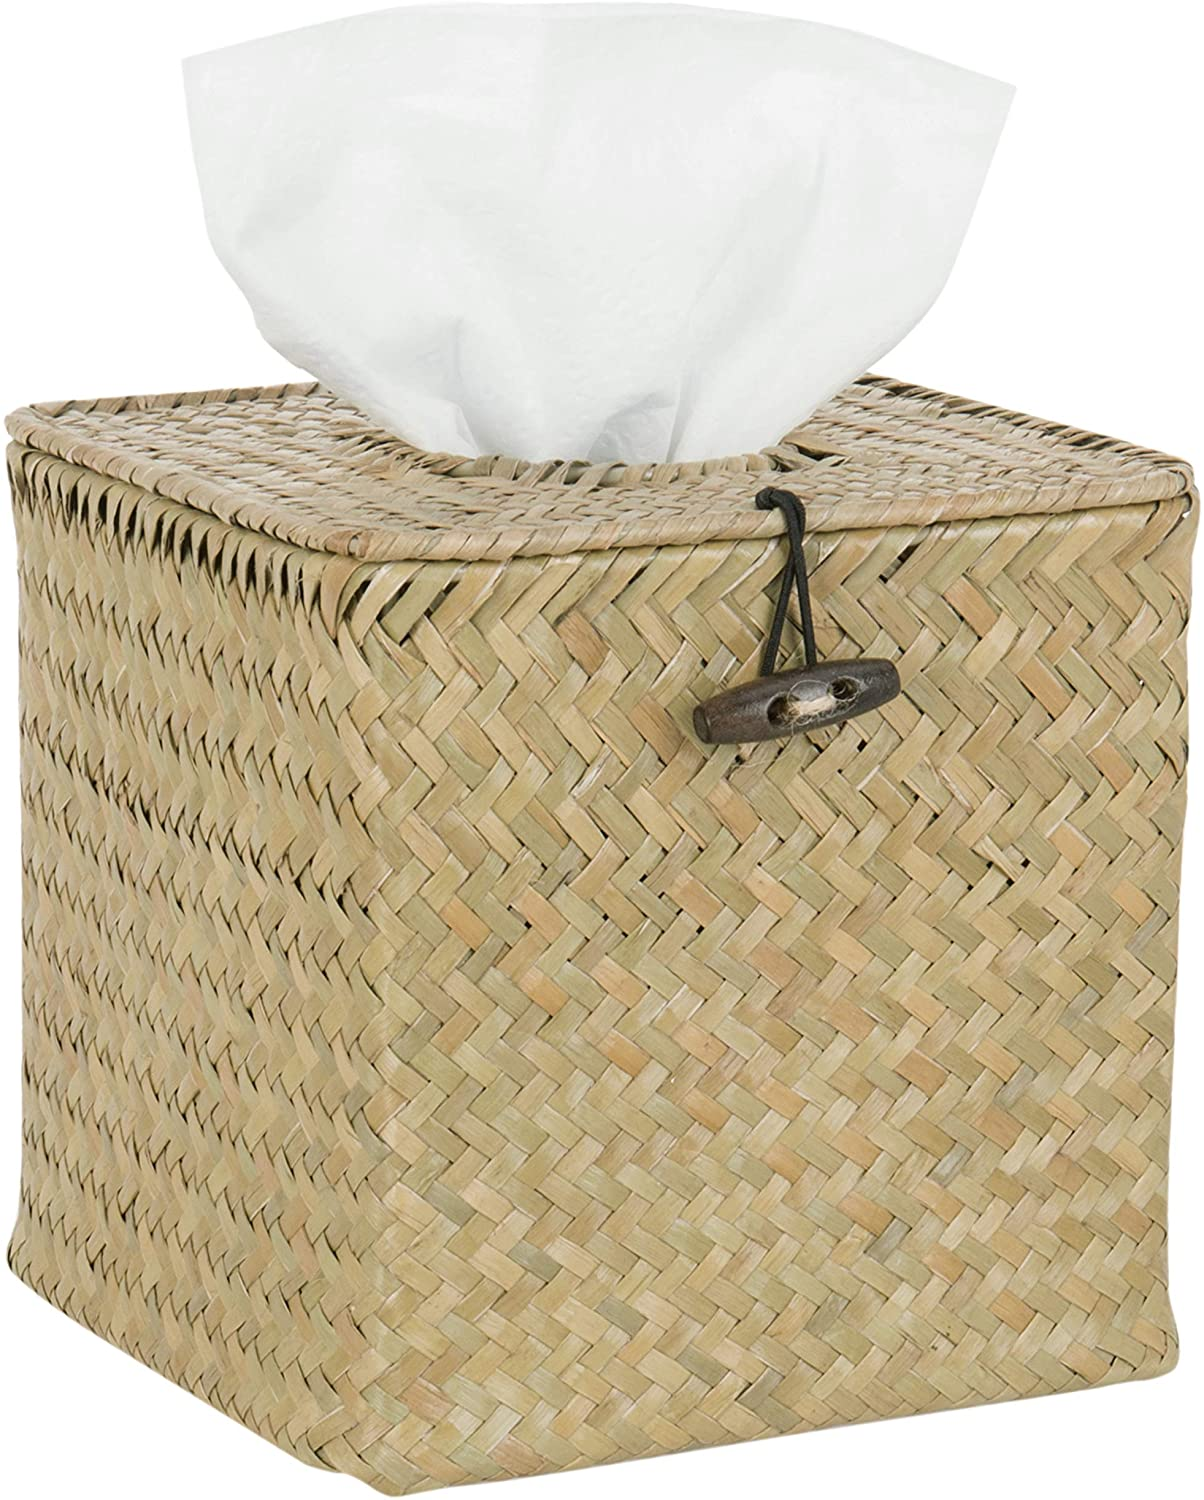 MyGift Woven Seagrass Refillable Tissue & Napkin Holder with Hinged Top Lid